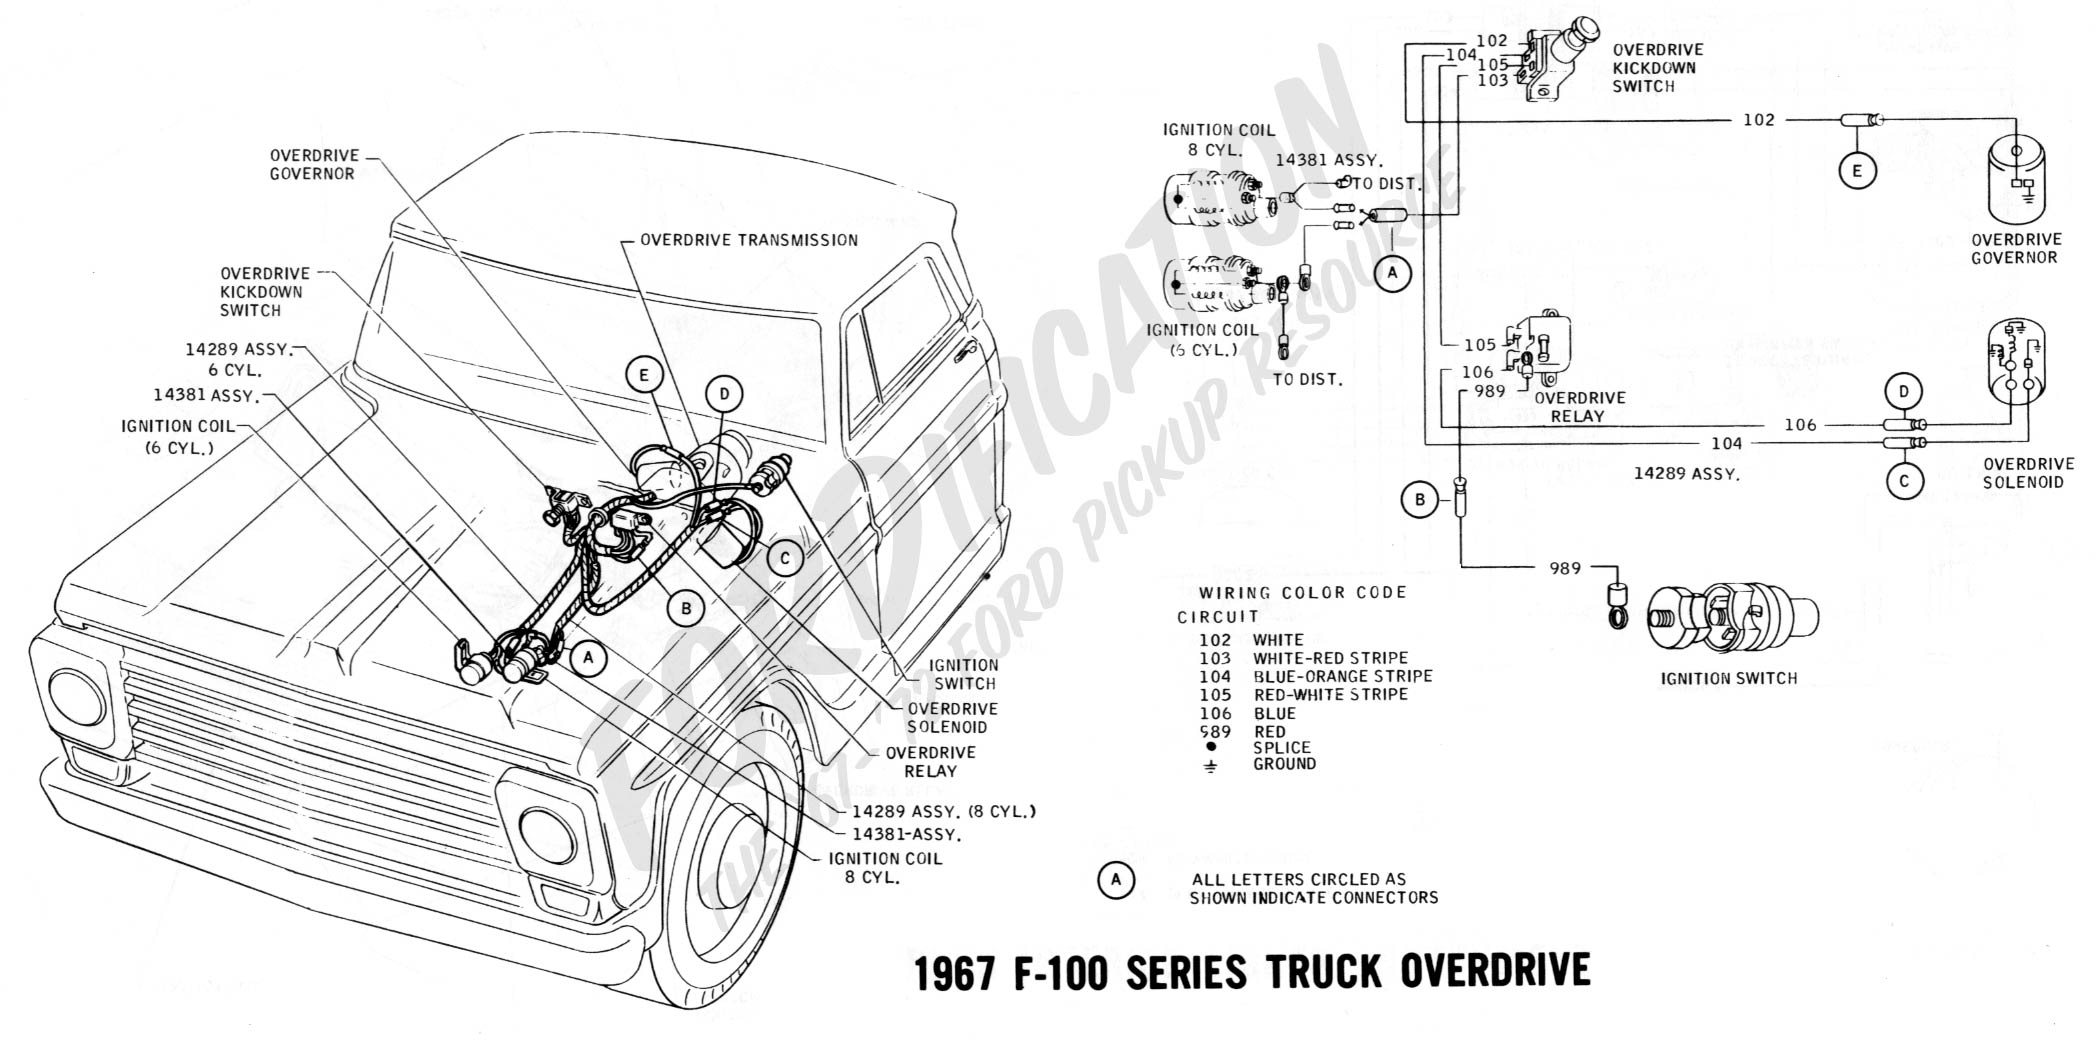 1968 Mustang Wiring Diagram Vacuum Schematics as well Lionel Train Transformers Wiring Diagrams as well RepairGuideContent together with 93 K1500 Wiring Diagram furthermore 1994 Chevy Truck Front Suspension Diagram Html. on chevy truck radio wiring diagram